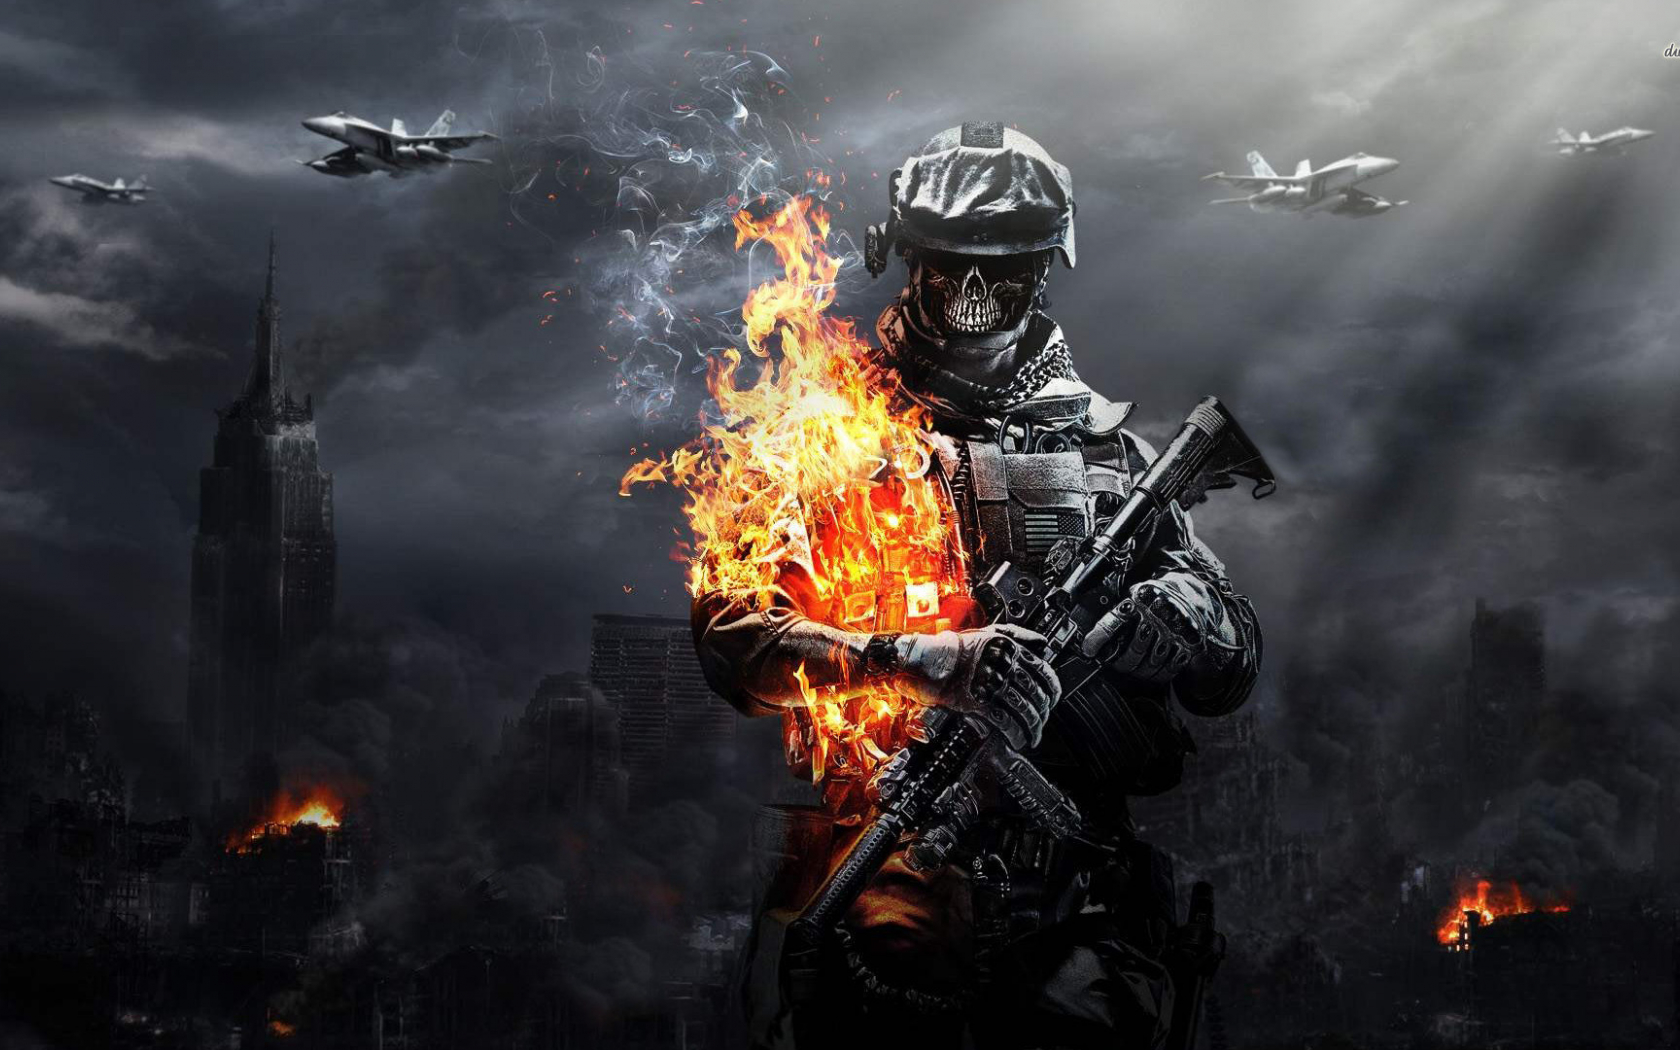 Cool Gaming Wallpapers Hd Resolution